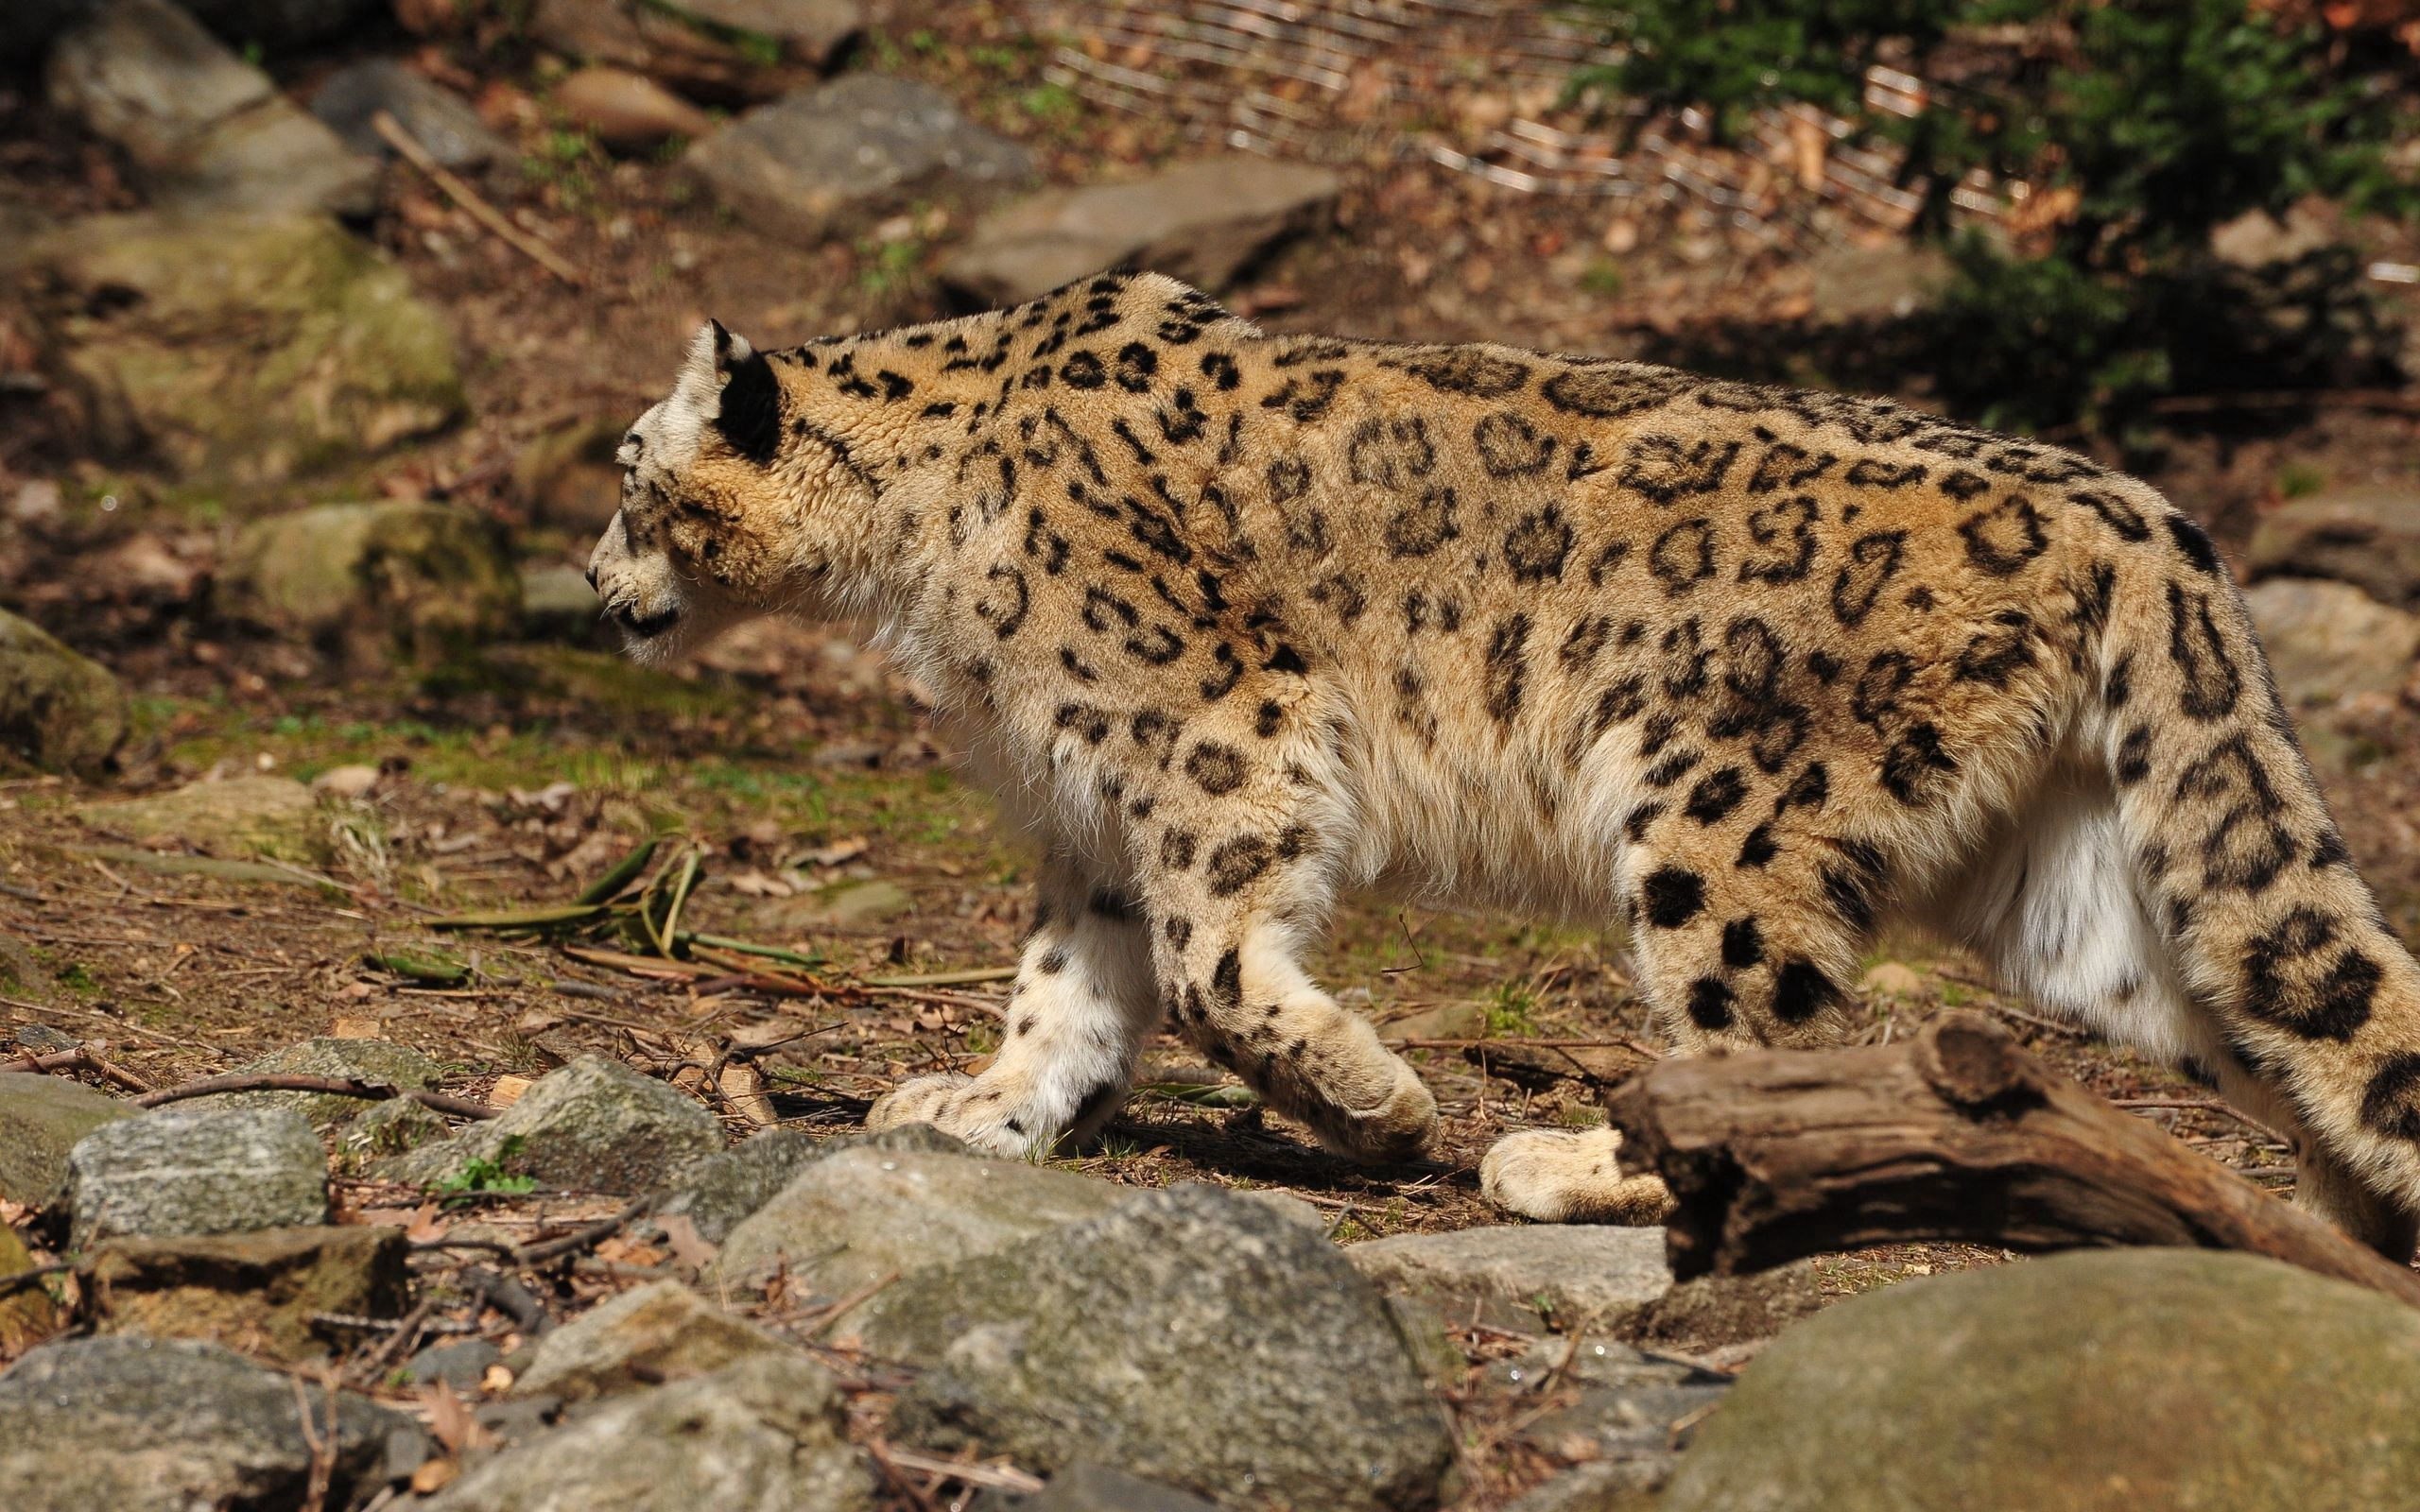 96496 download wallpaper Animals, Stroll, Predator, Big Cat, Snow Leopard screensavers and pictures for free